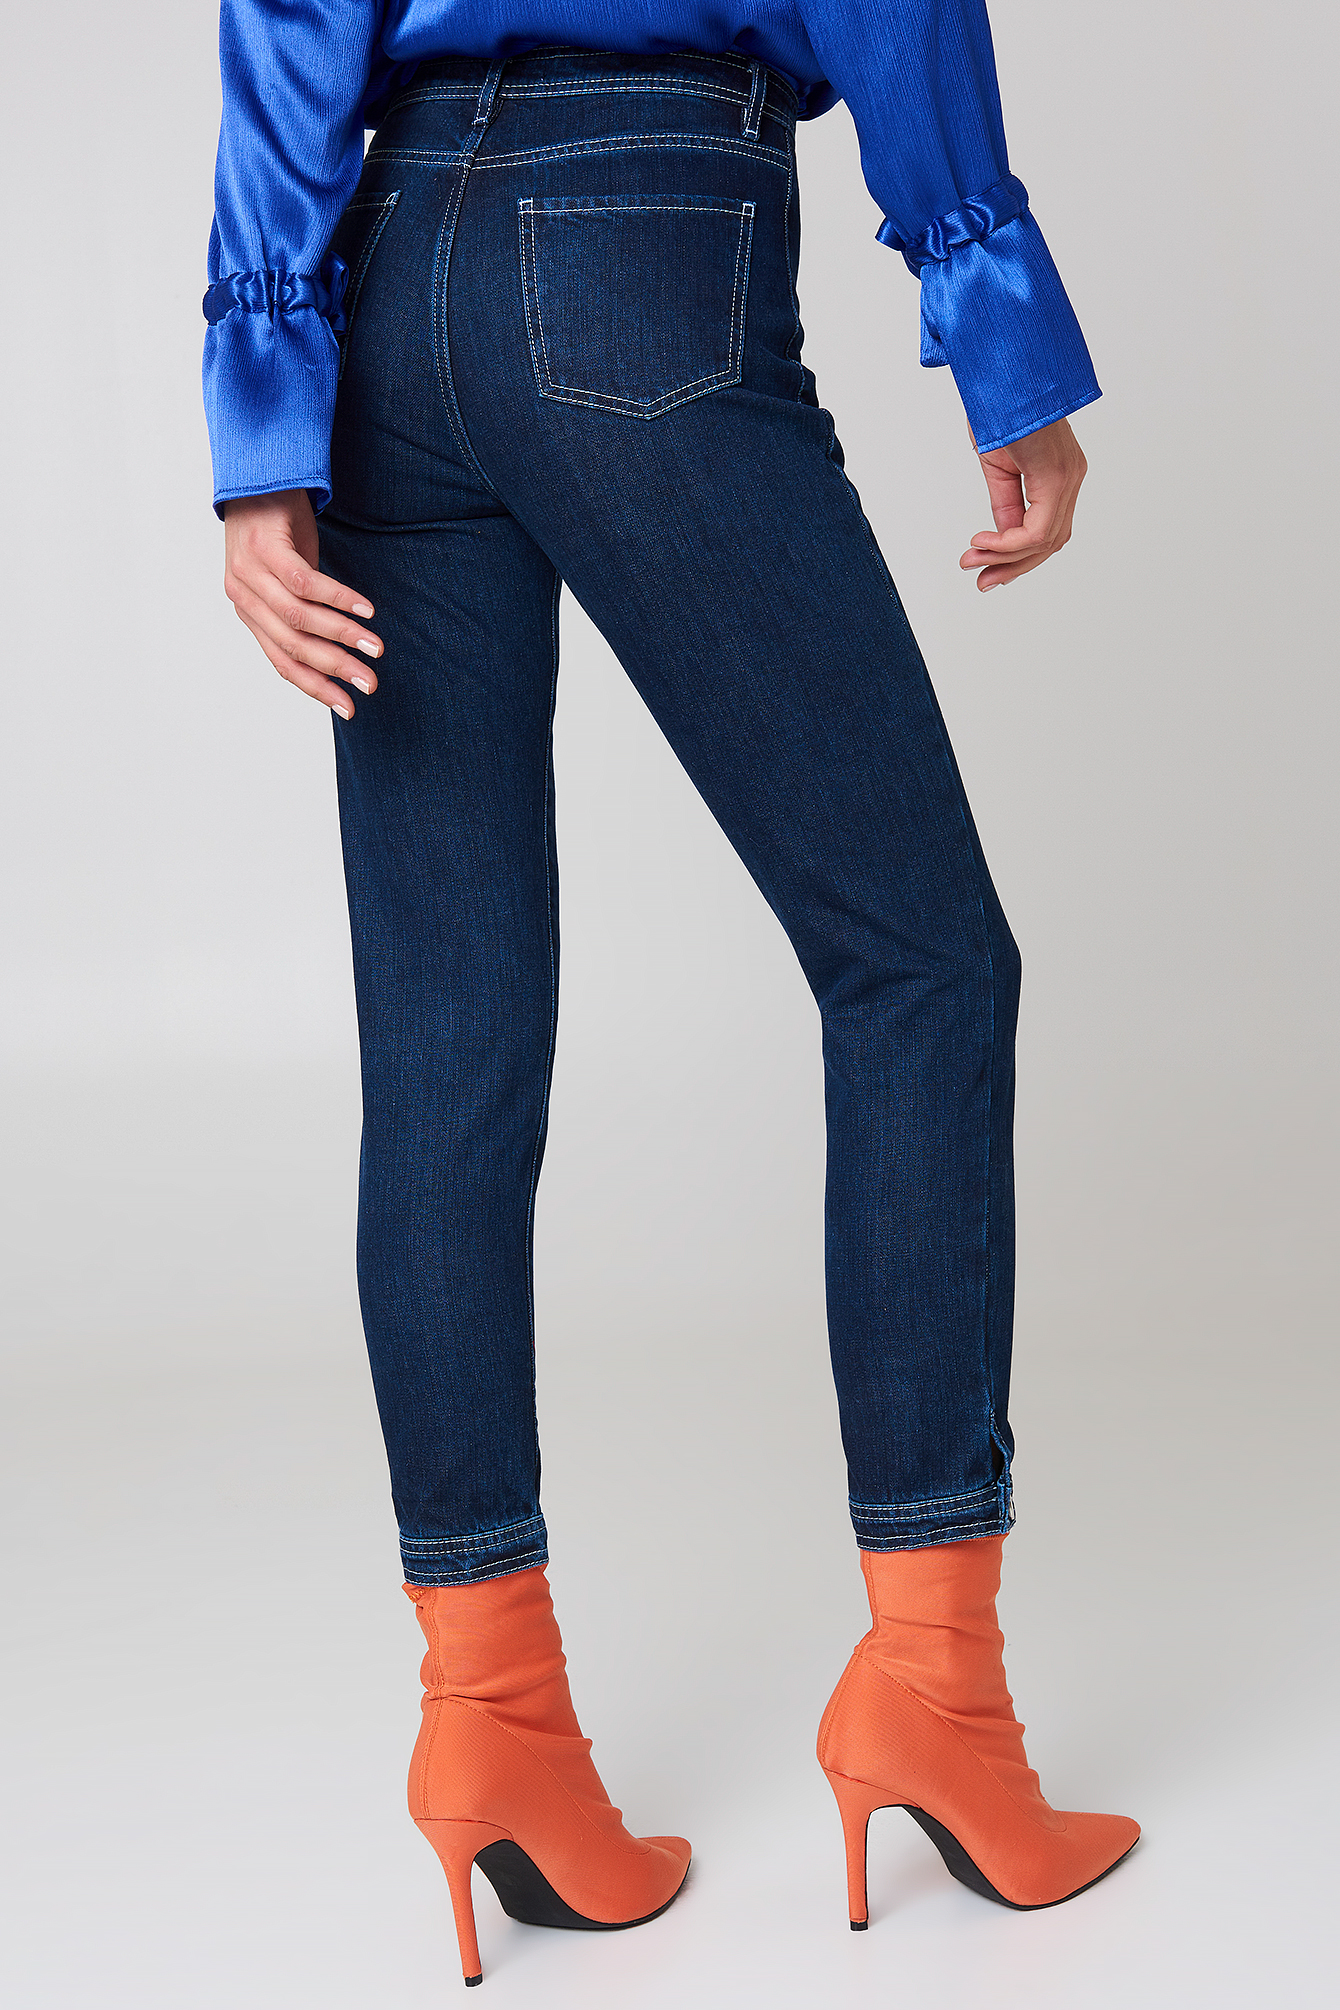 Bottom Hem Detail Denim NA-KD.COM